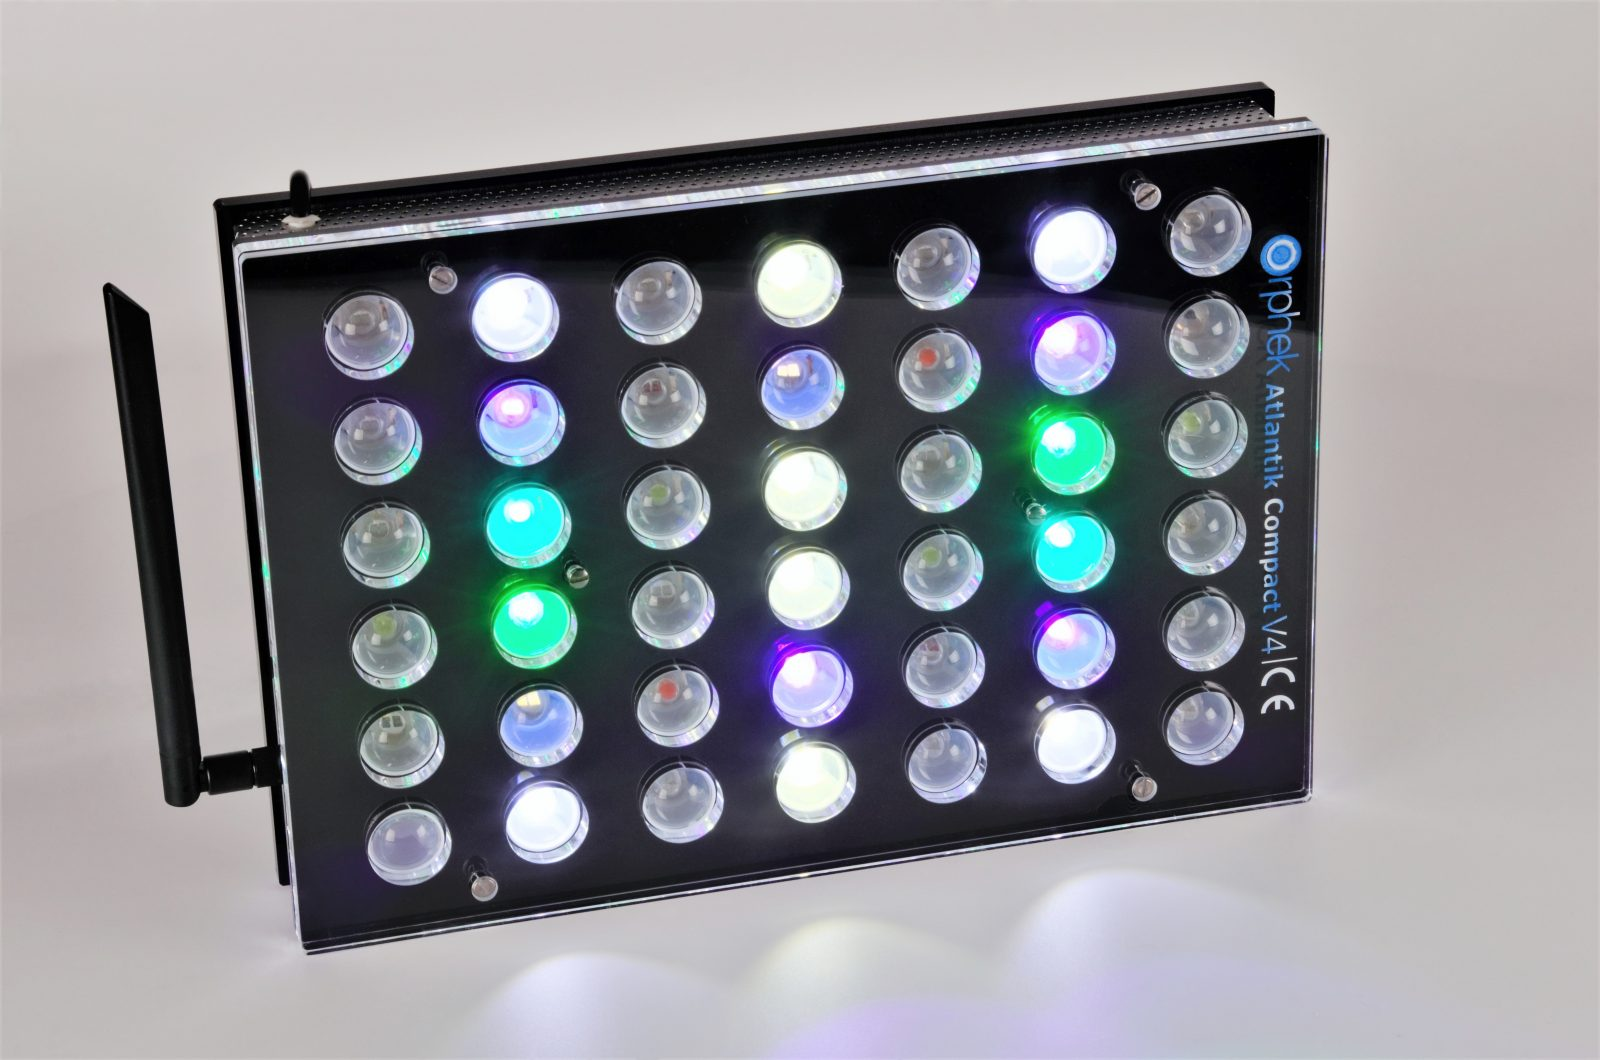 Orphek-Aquarium-LED-Lighting-Atlantik -Compact-V4-light -on-channel 1 + 3